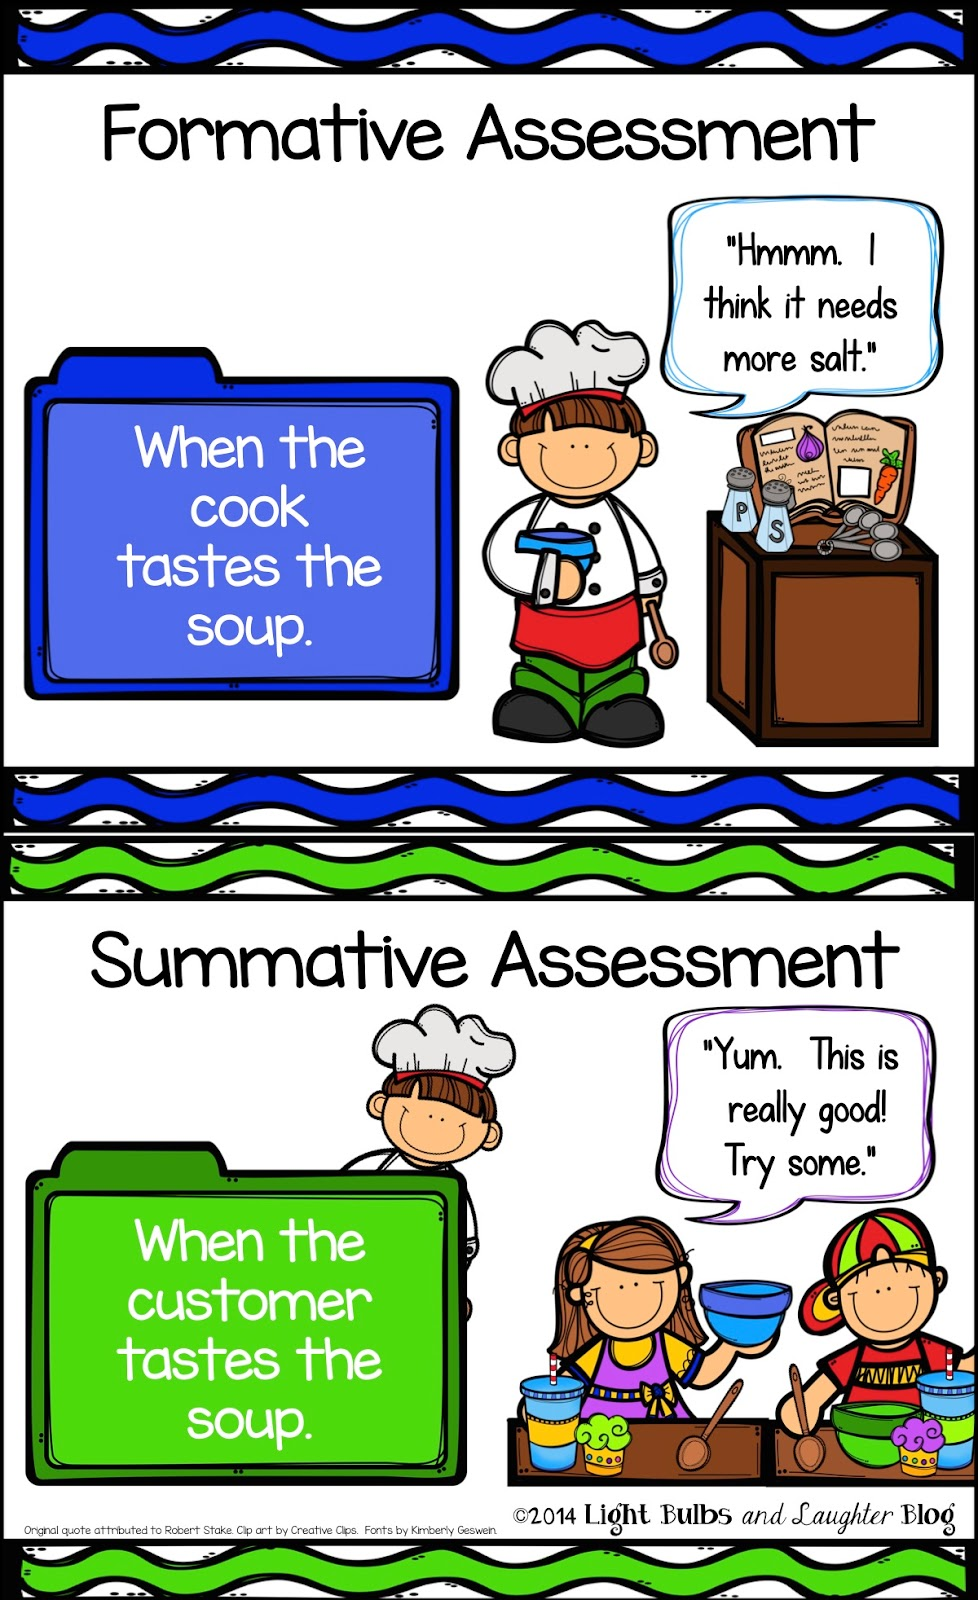 What is a Formative Assessment, Anyway? - Light Bulbs and Laughter Blog